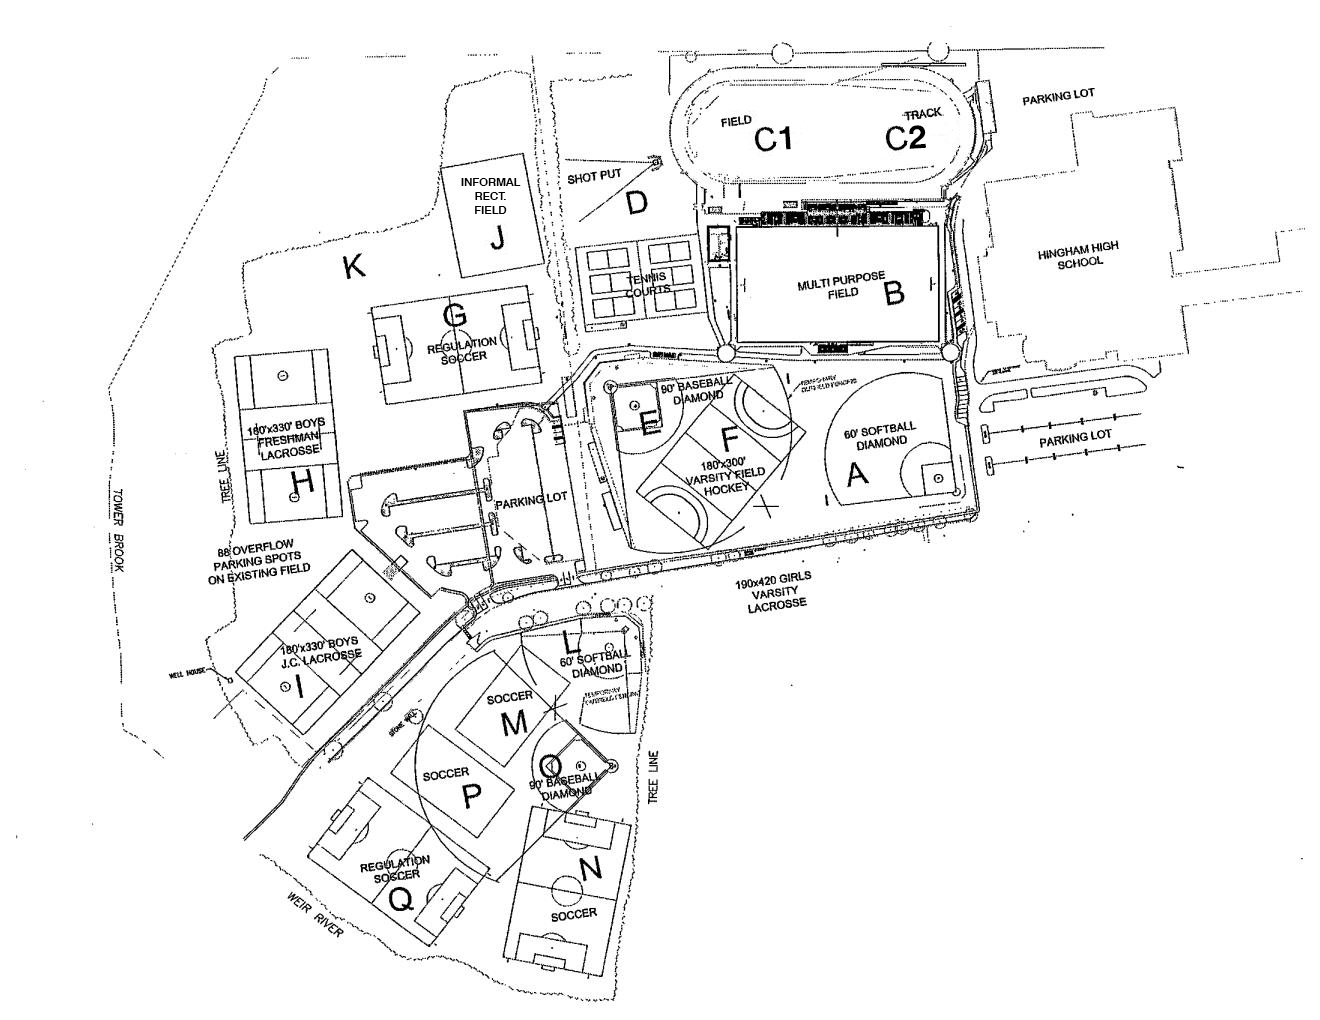 <strong>Hingham High School Field Map</strong>